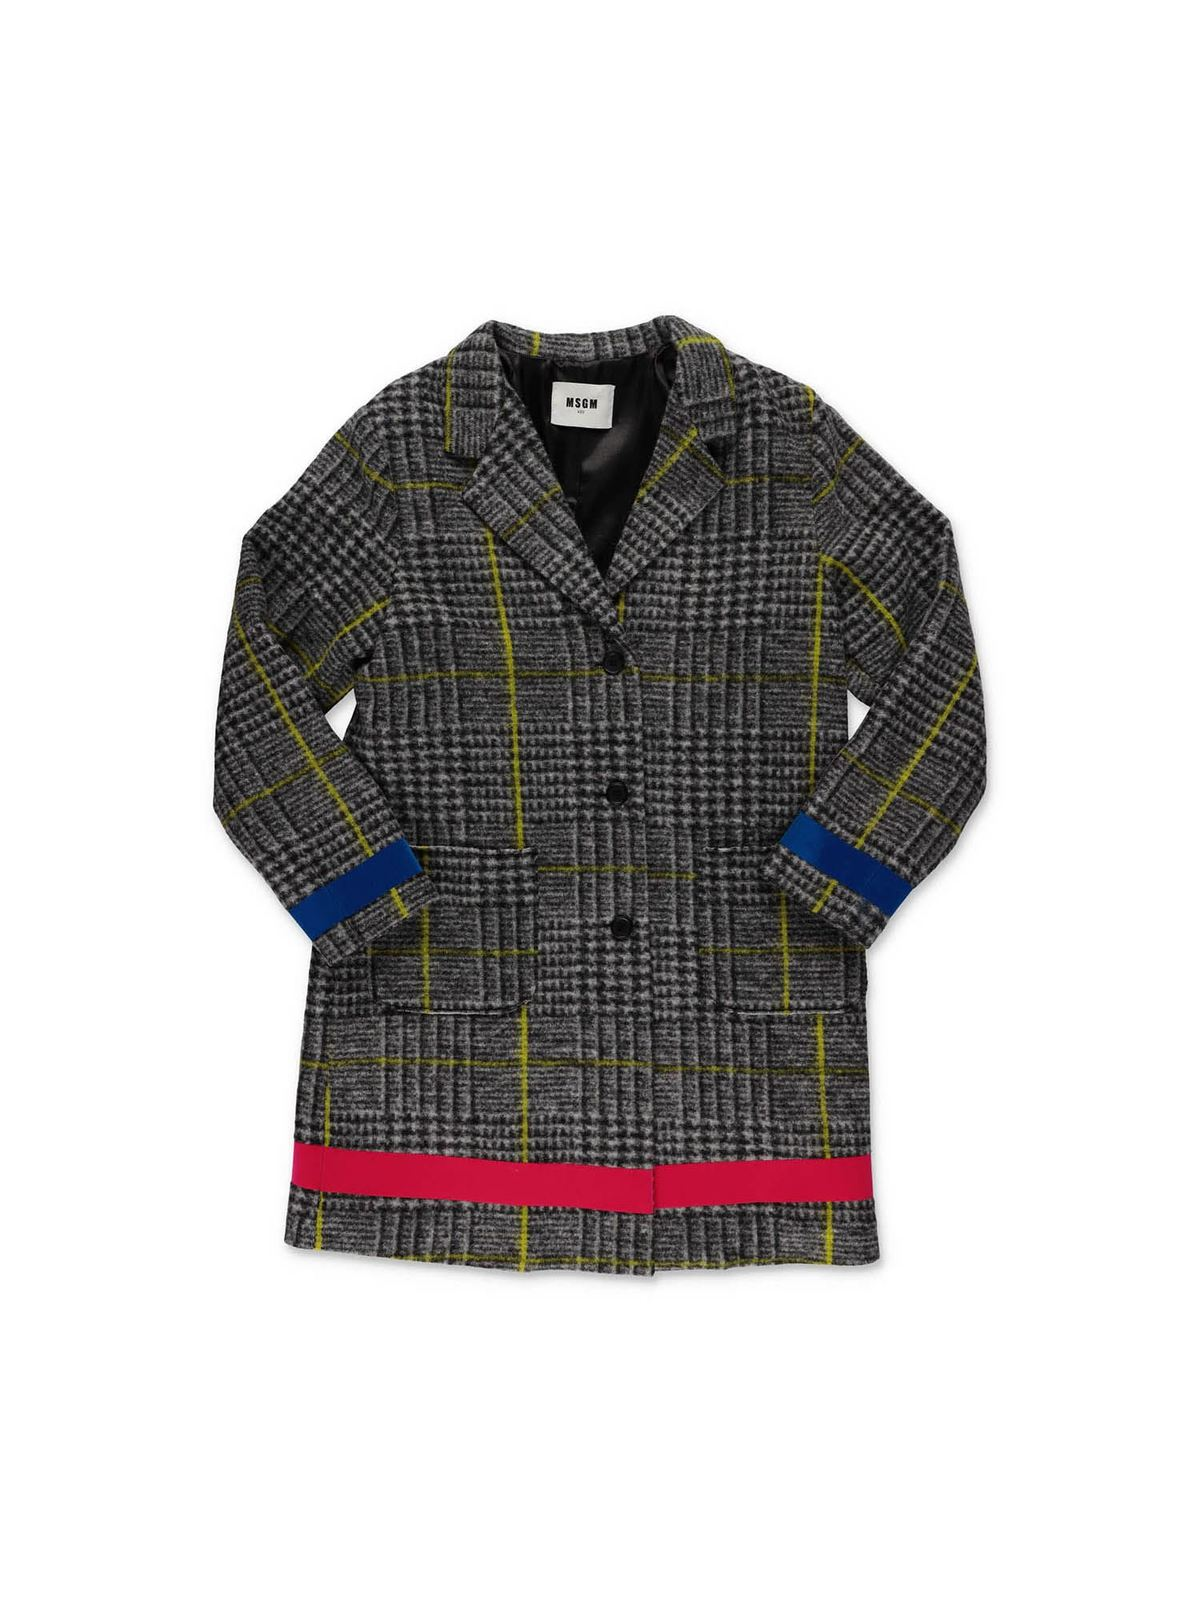 Msgm Linings GRAY HOUNDSTOOTH COAT